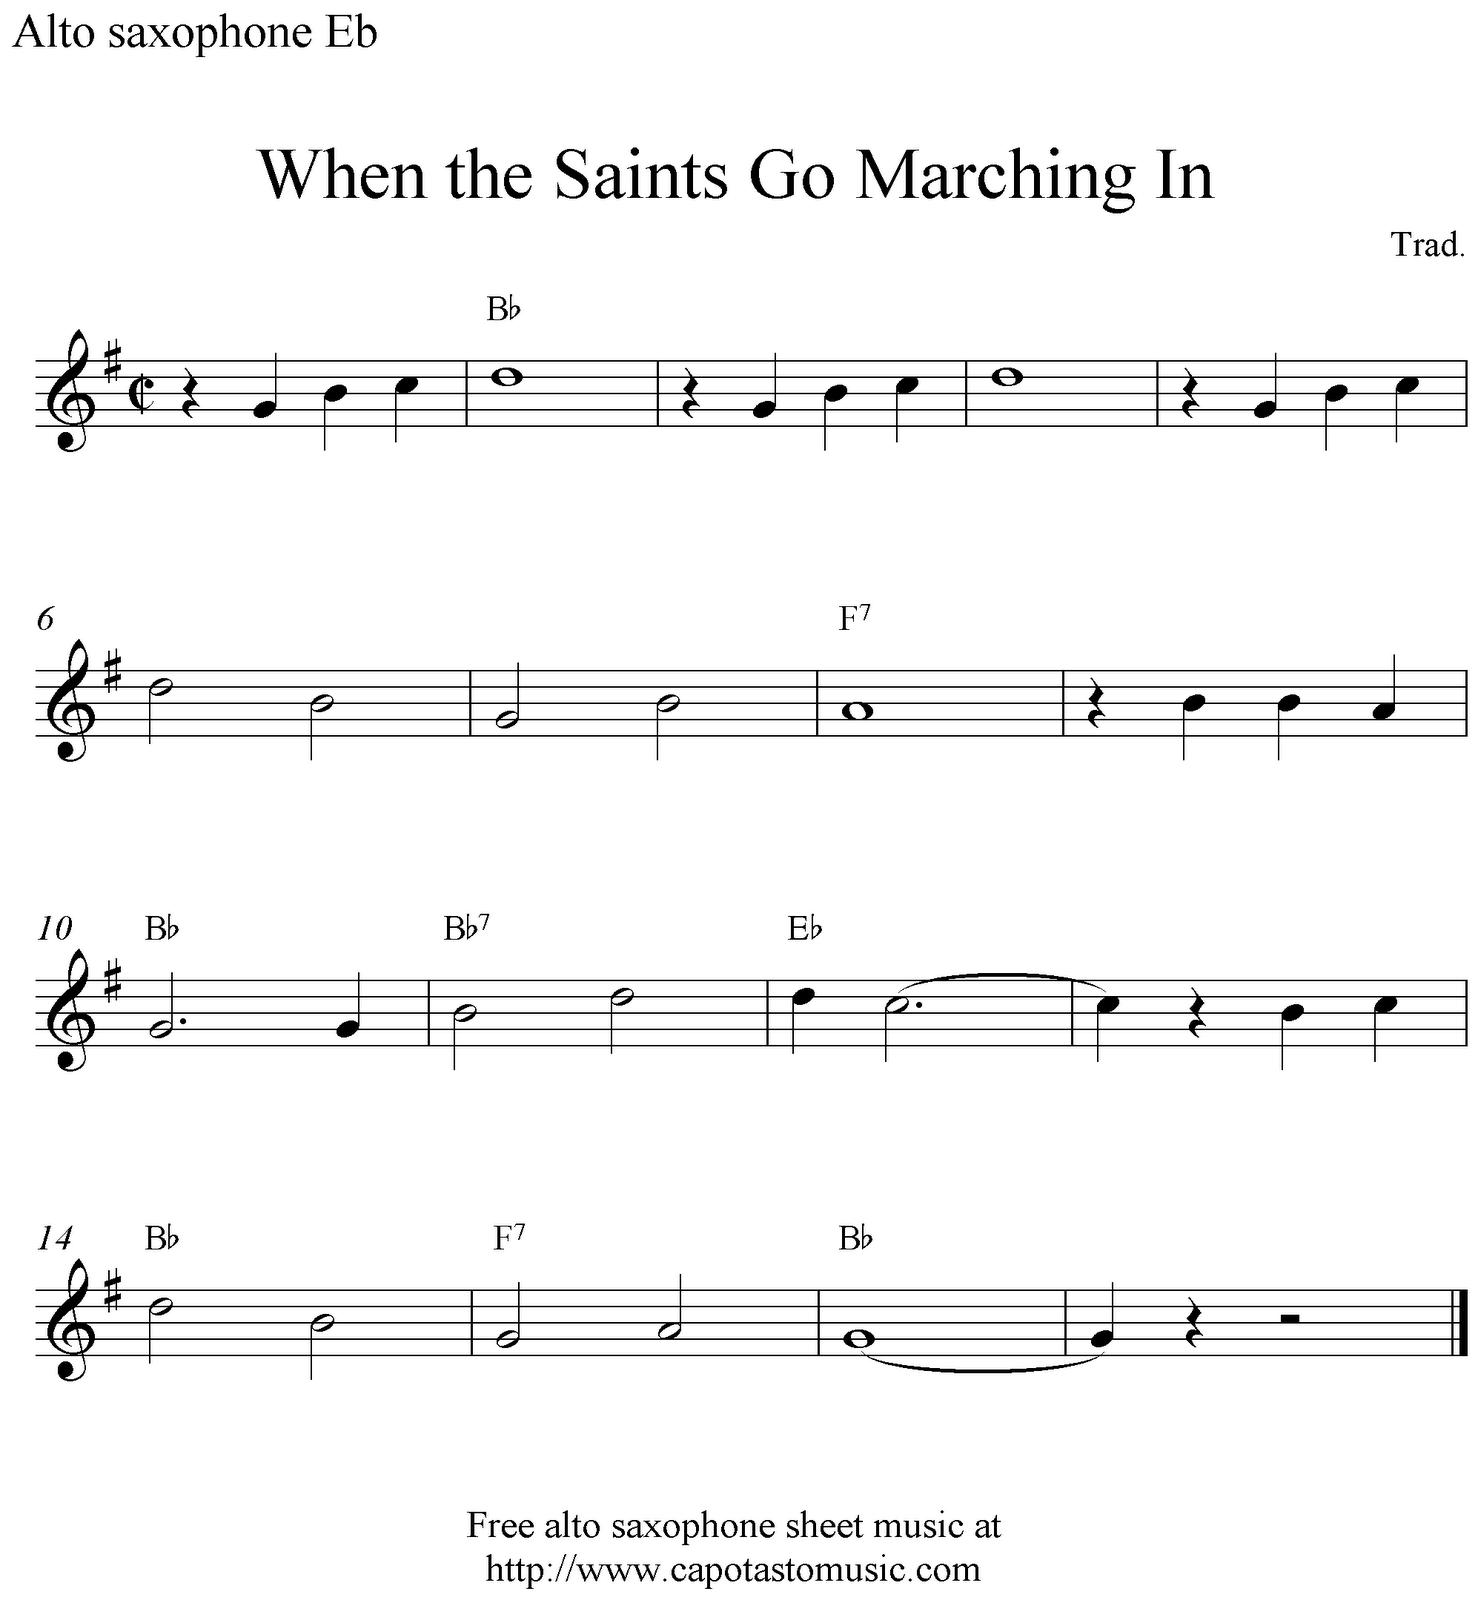 When The Saints Go Marching In: When The Saints Go Marching In, Free Alto Saxophone Sheet